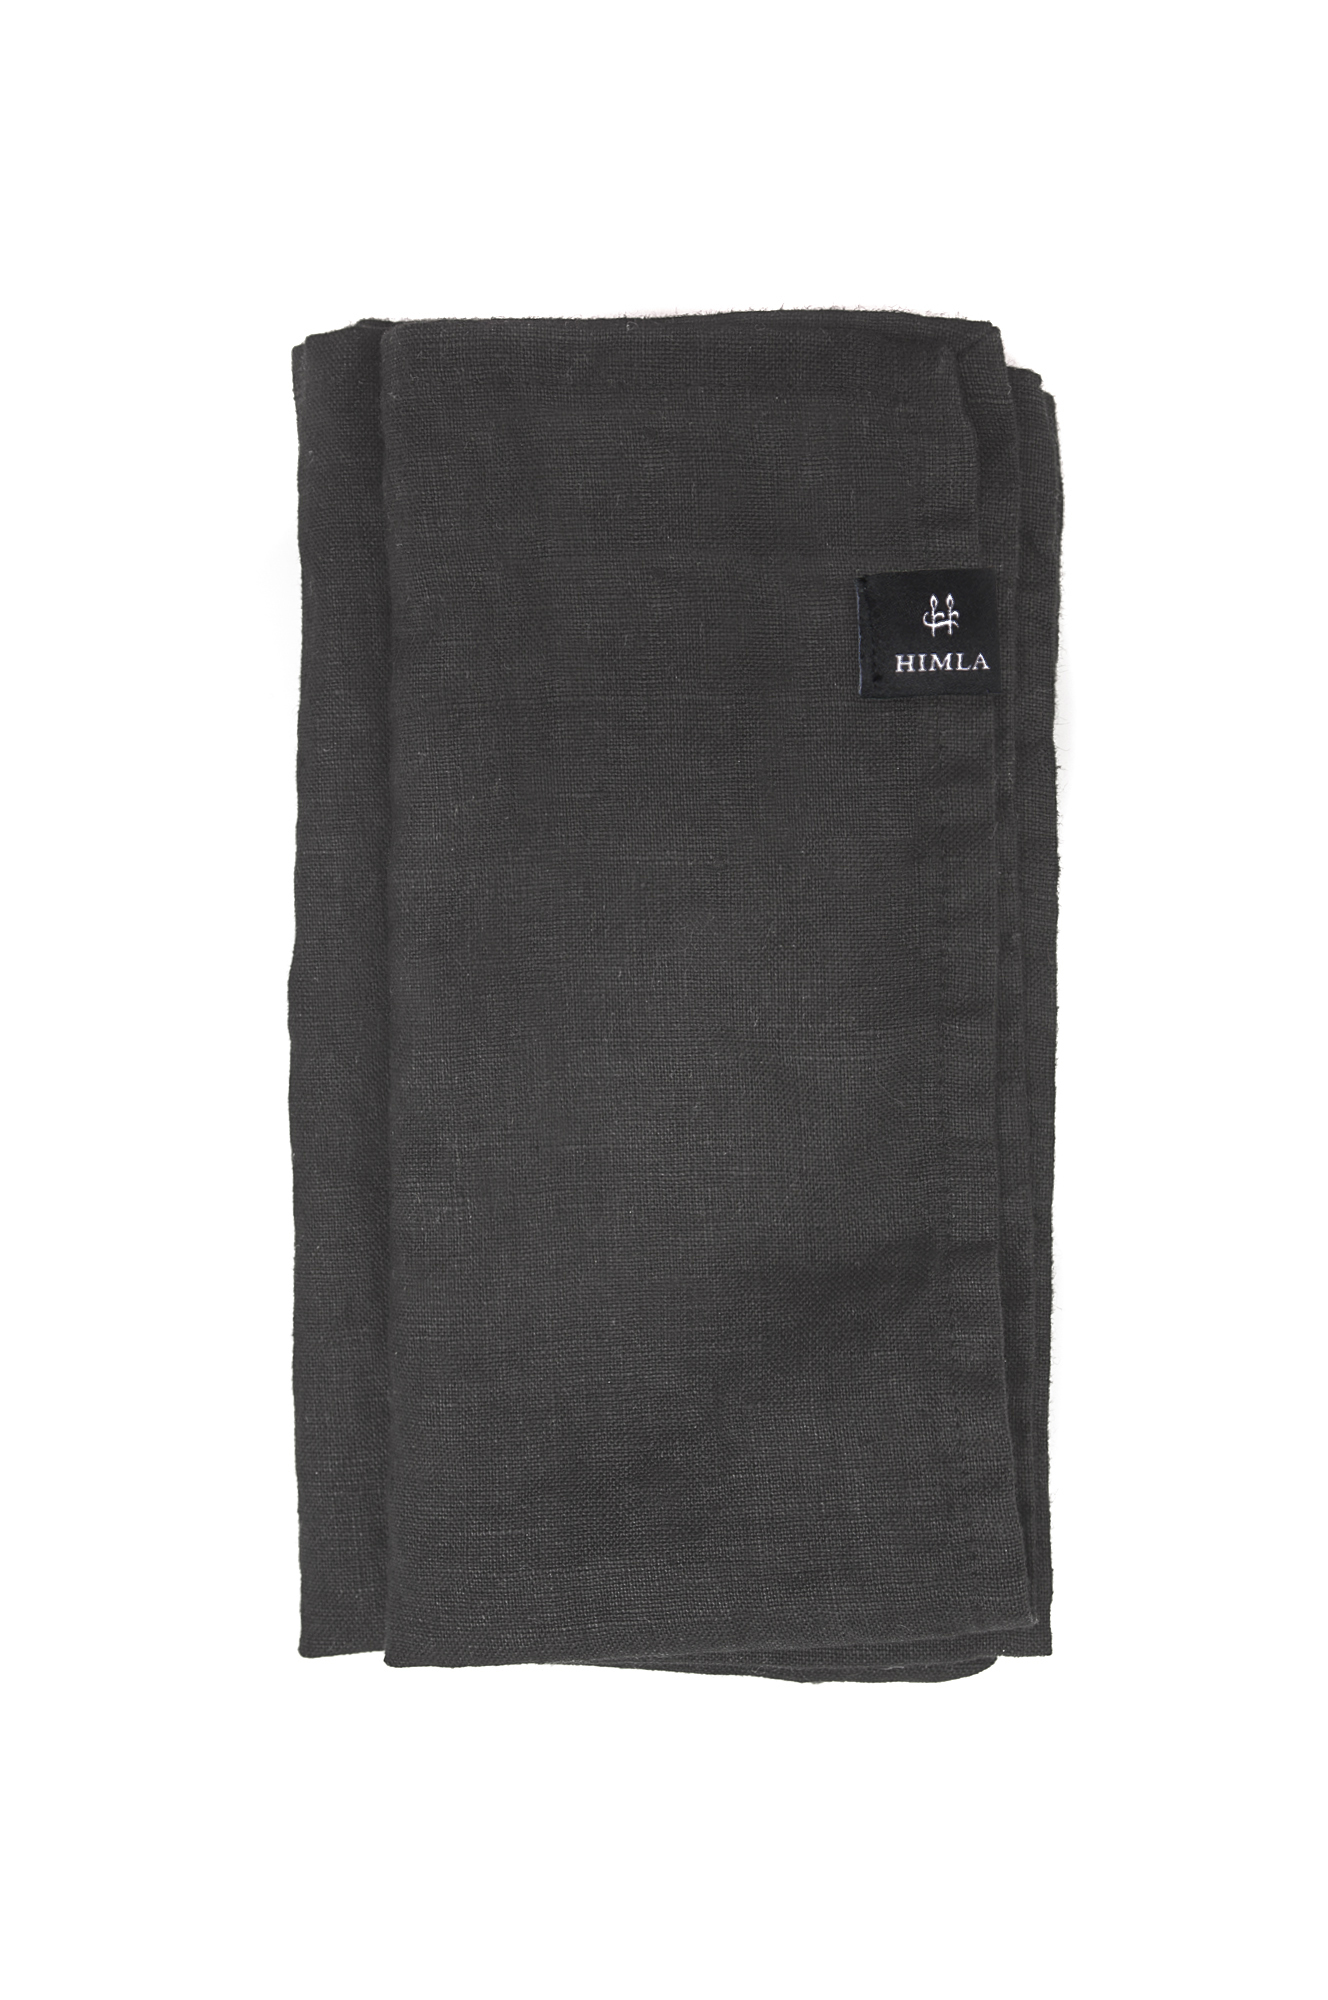 Black Sunshine Linen Napkin 45x45cm (Set of 4)